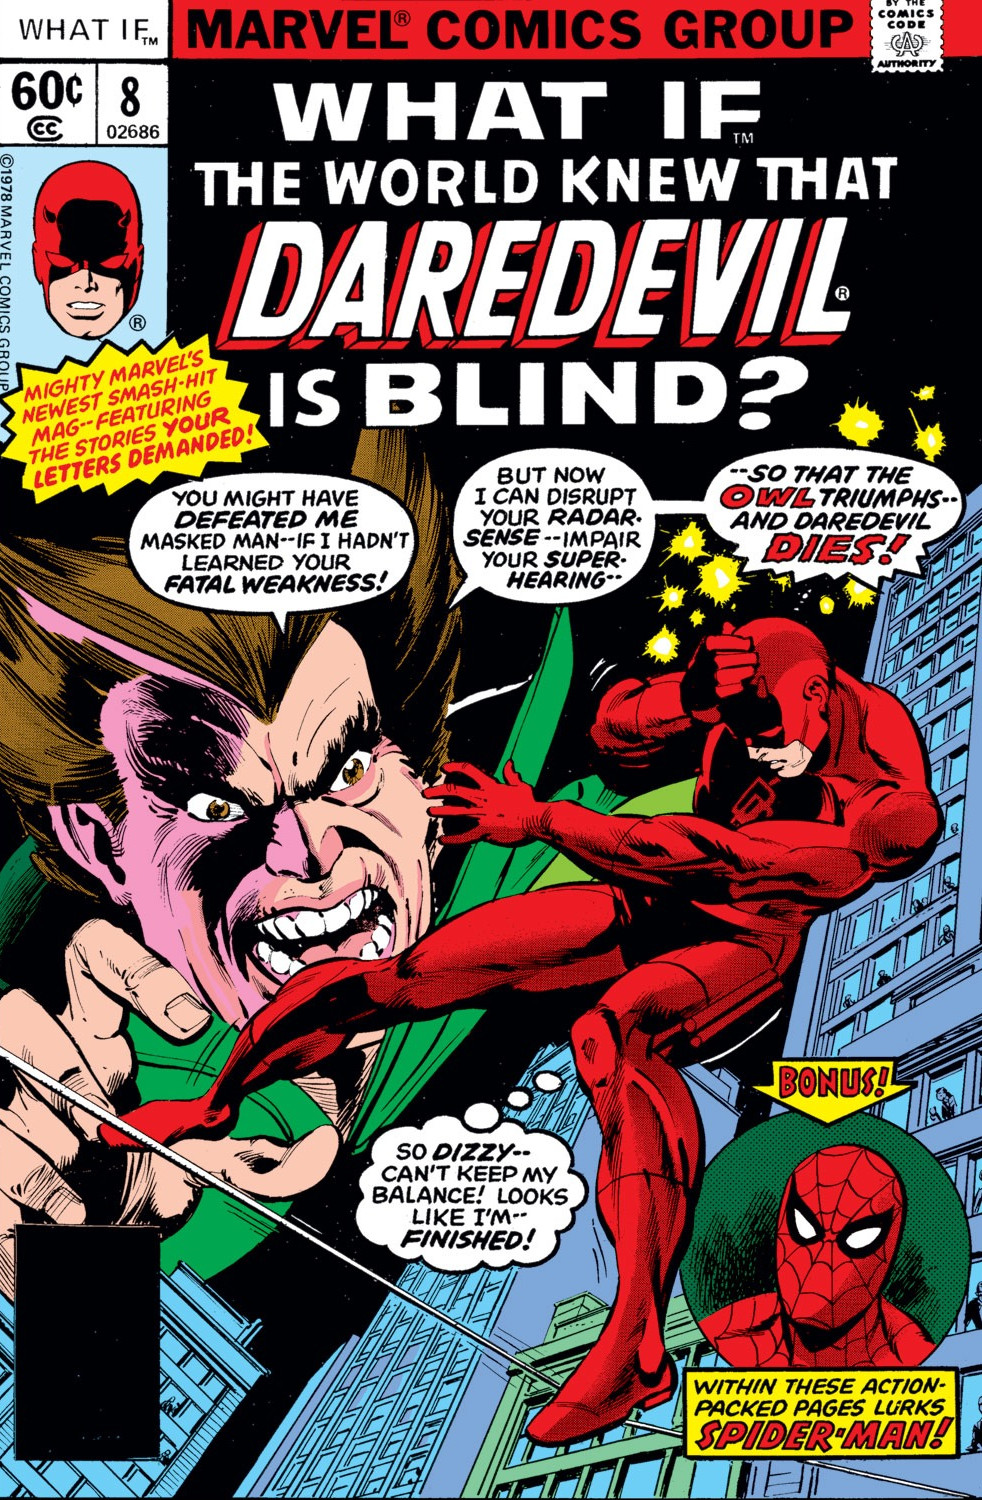 Image result for what if comics daredevil